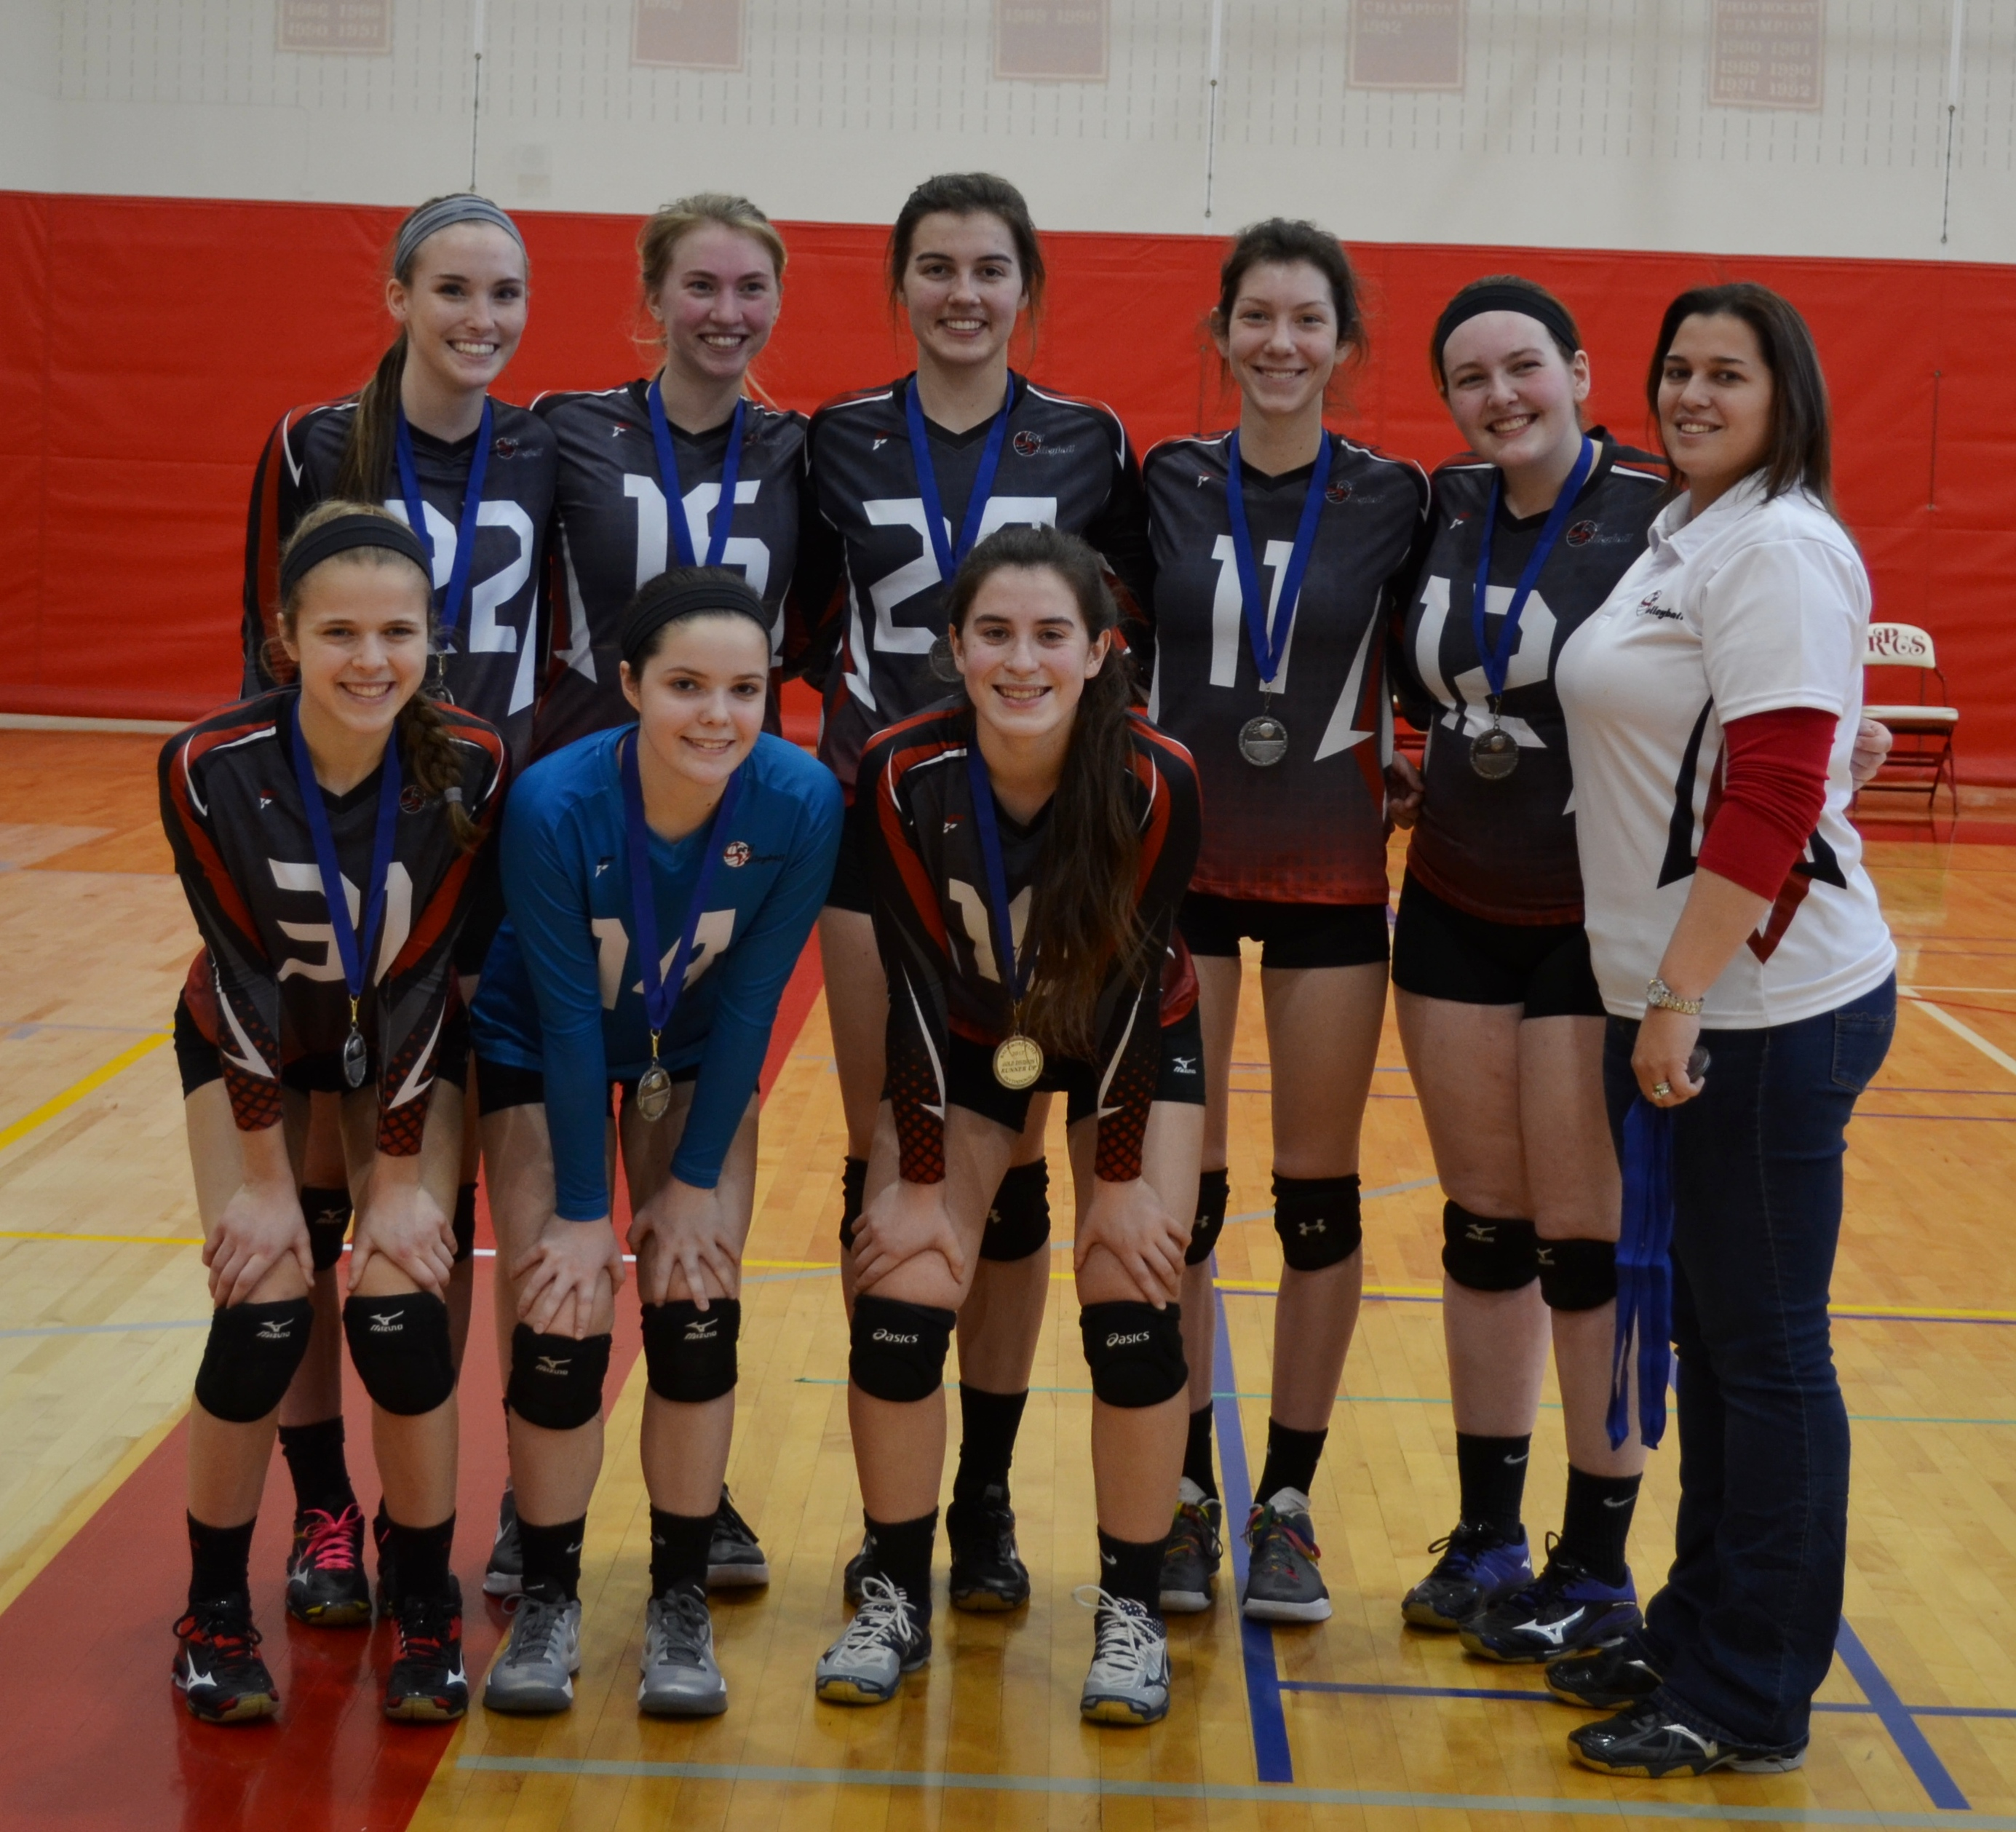 Home Cecil Volleyball Academy